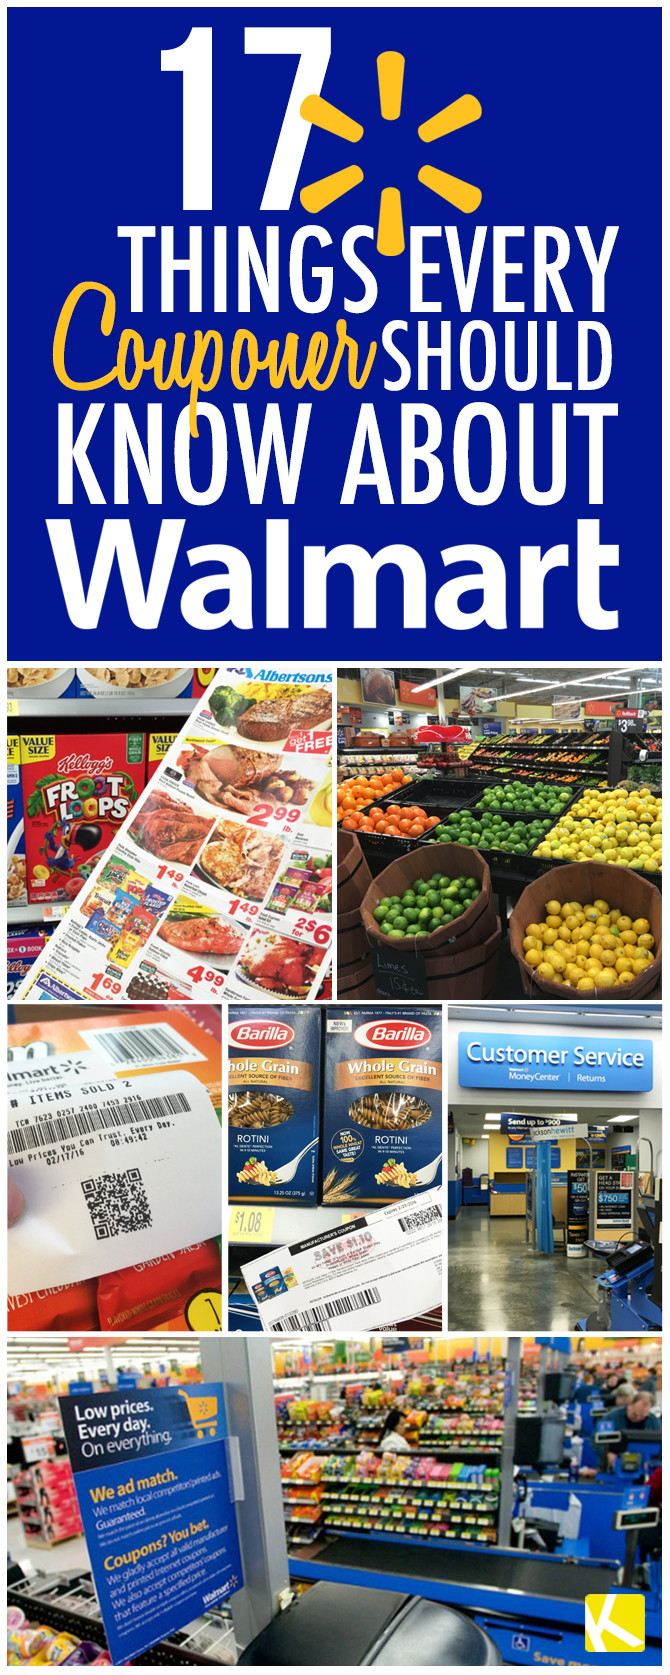 Walmart CouponsFree Ship· Free Store Pick Up· Best Coupons & Deals· Accessories & More.